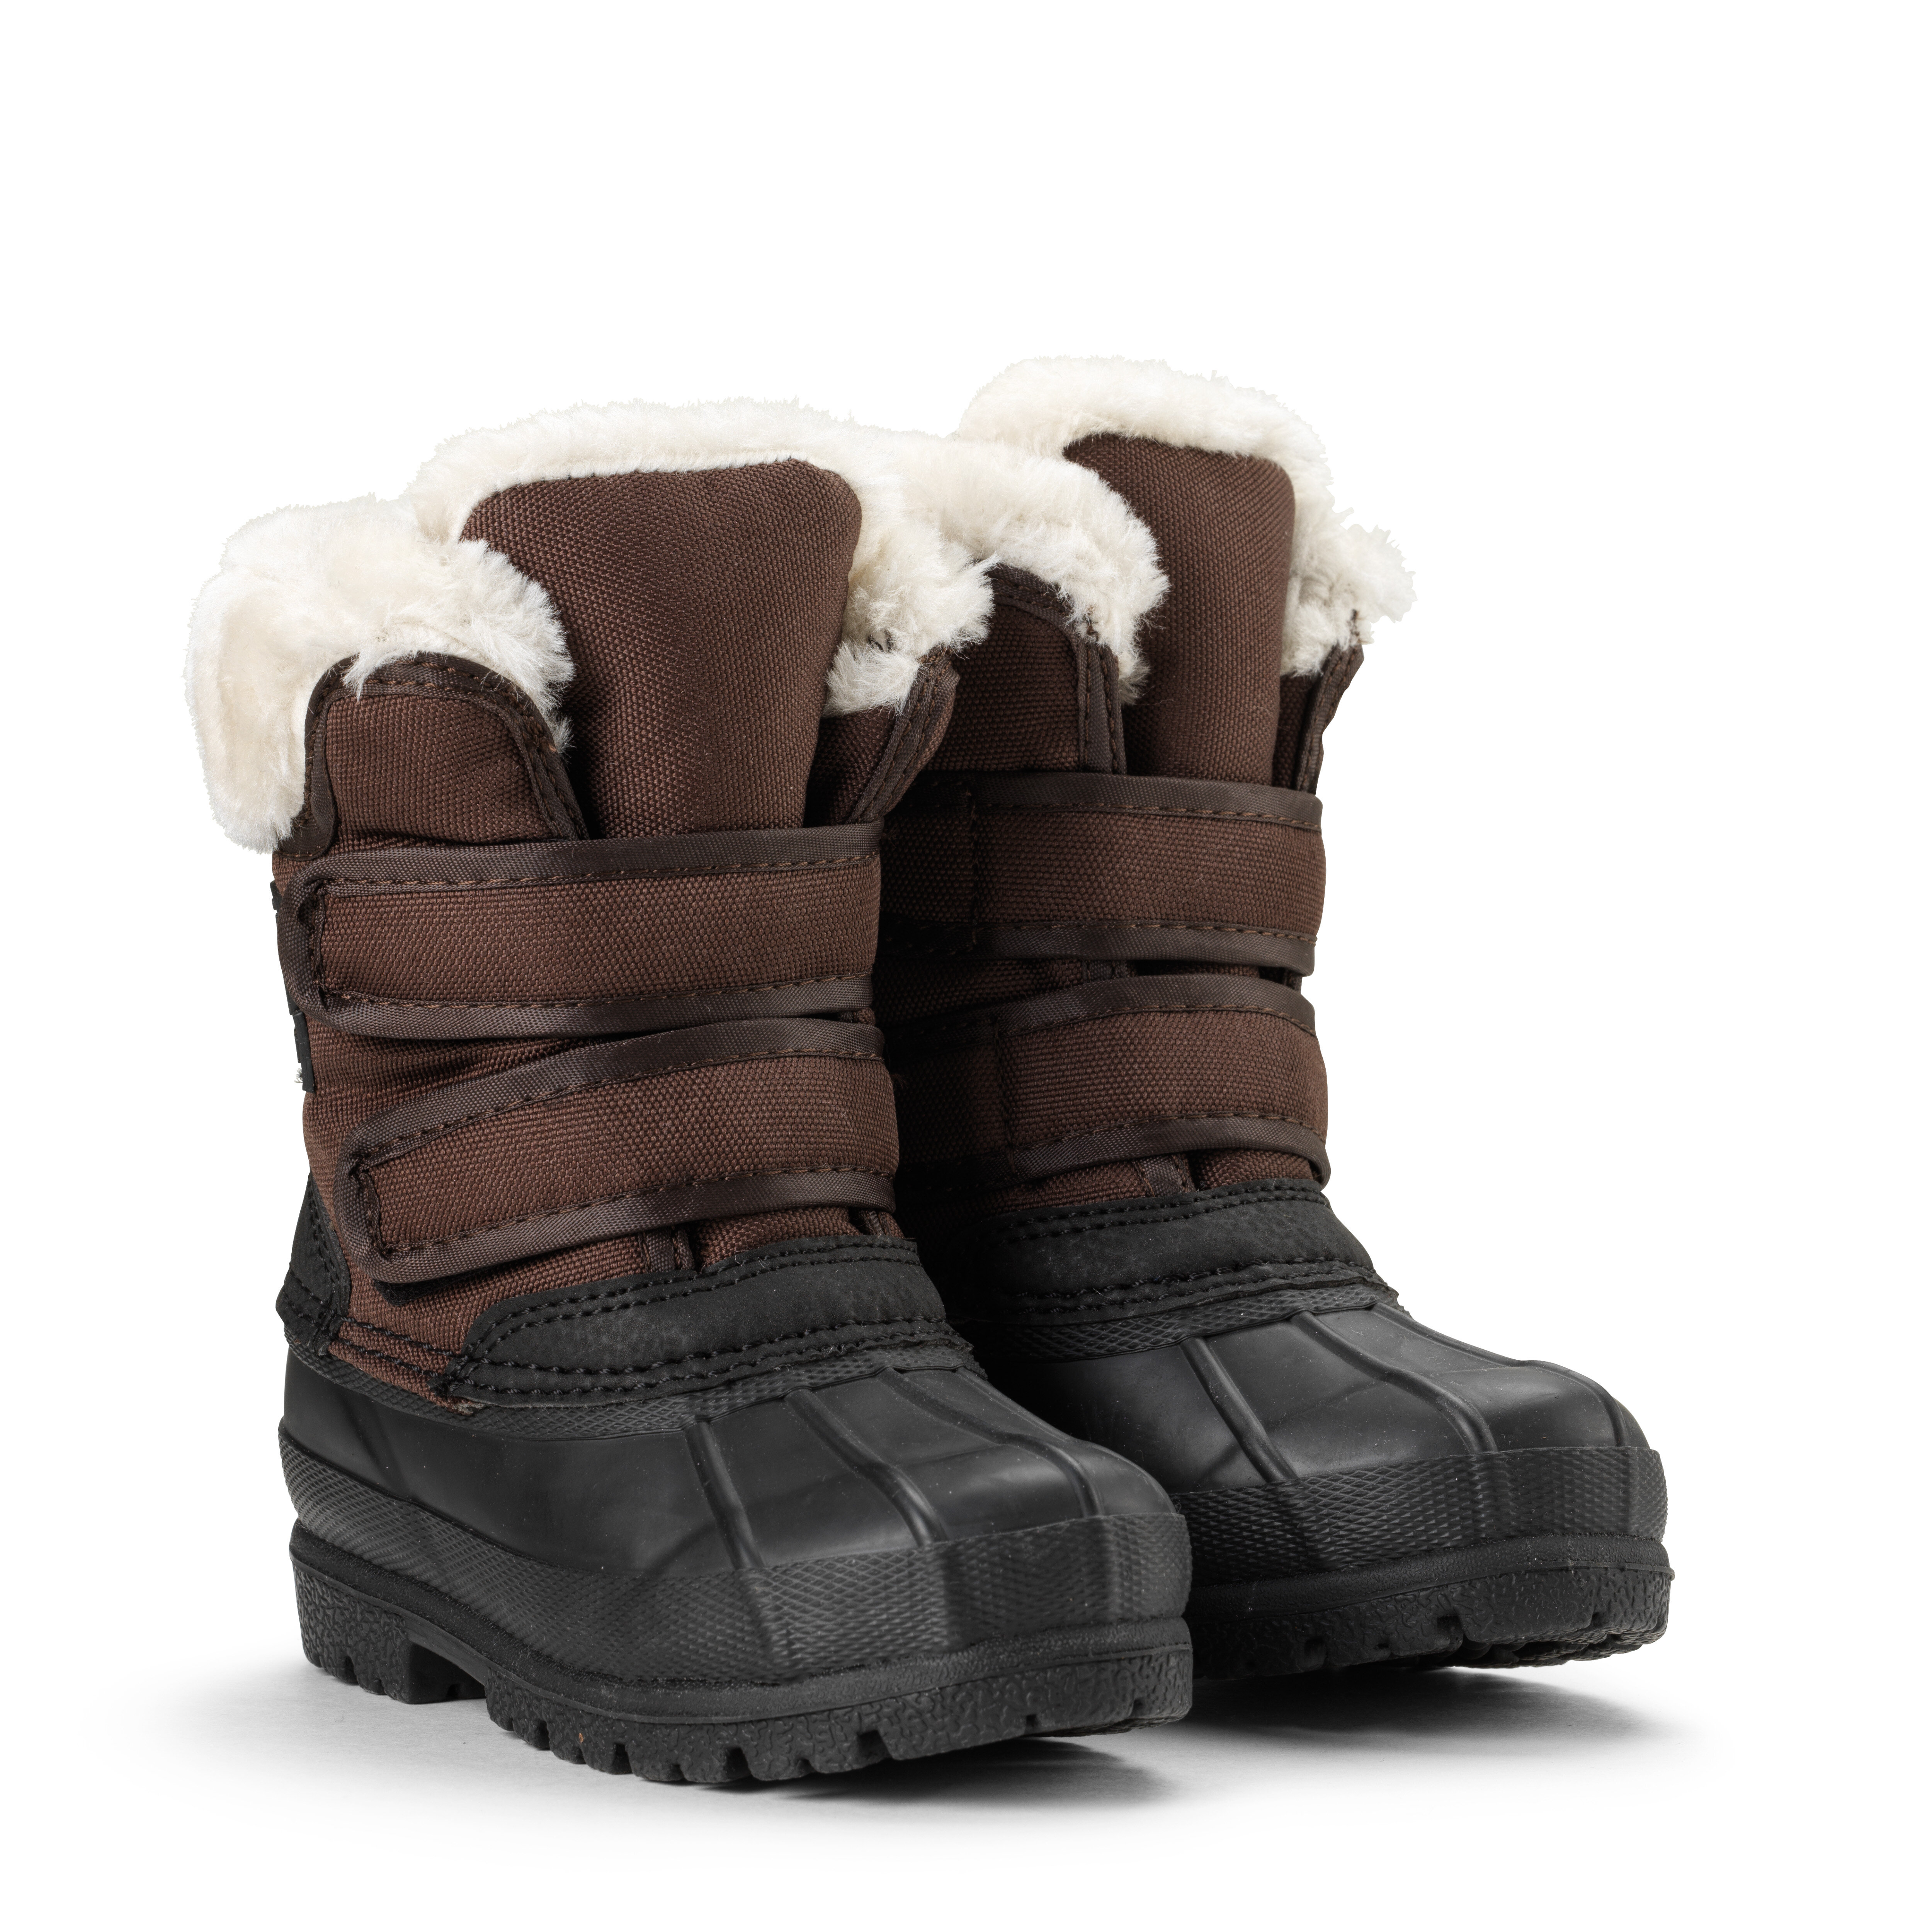 EXPEDITION BOOT